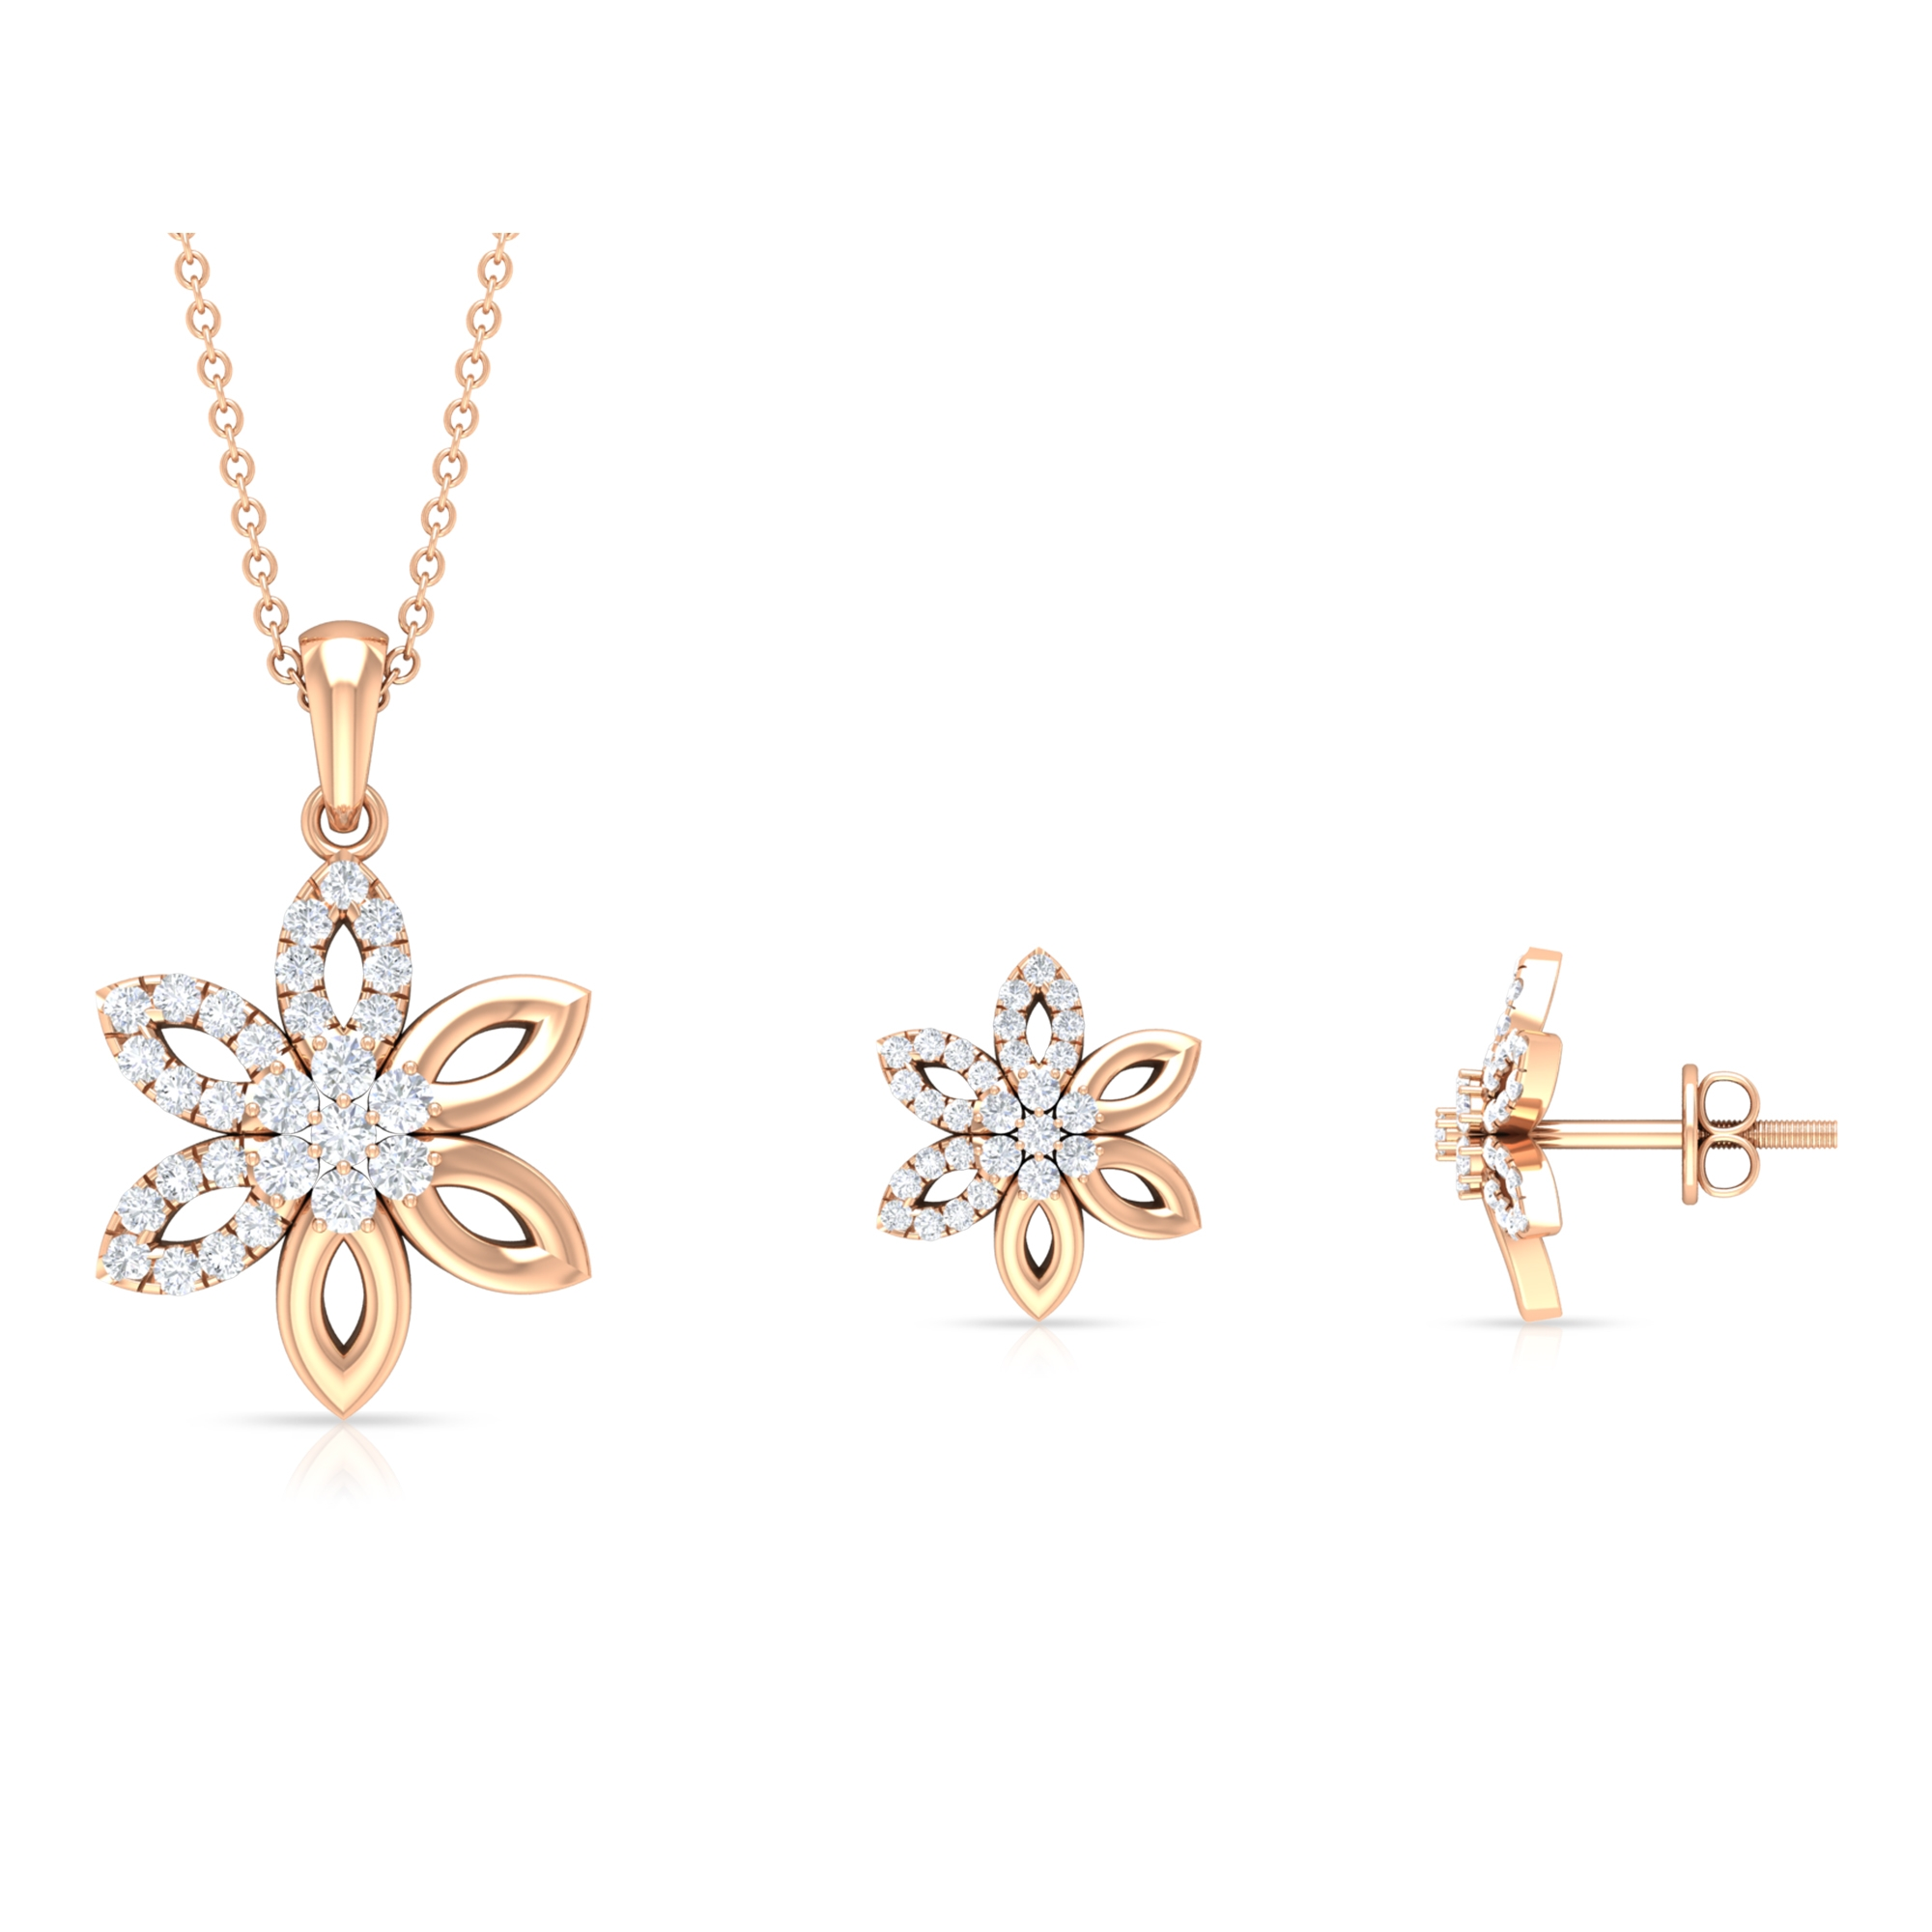 1 CT Diamond Floral Earring and Pendant Set for Women